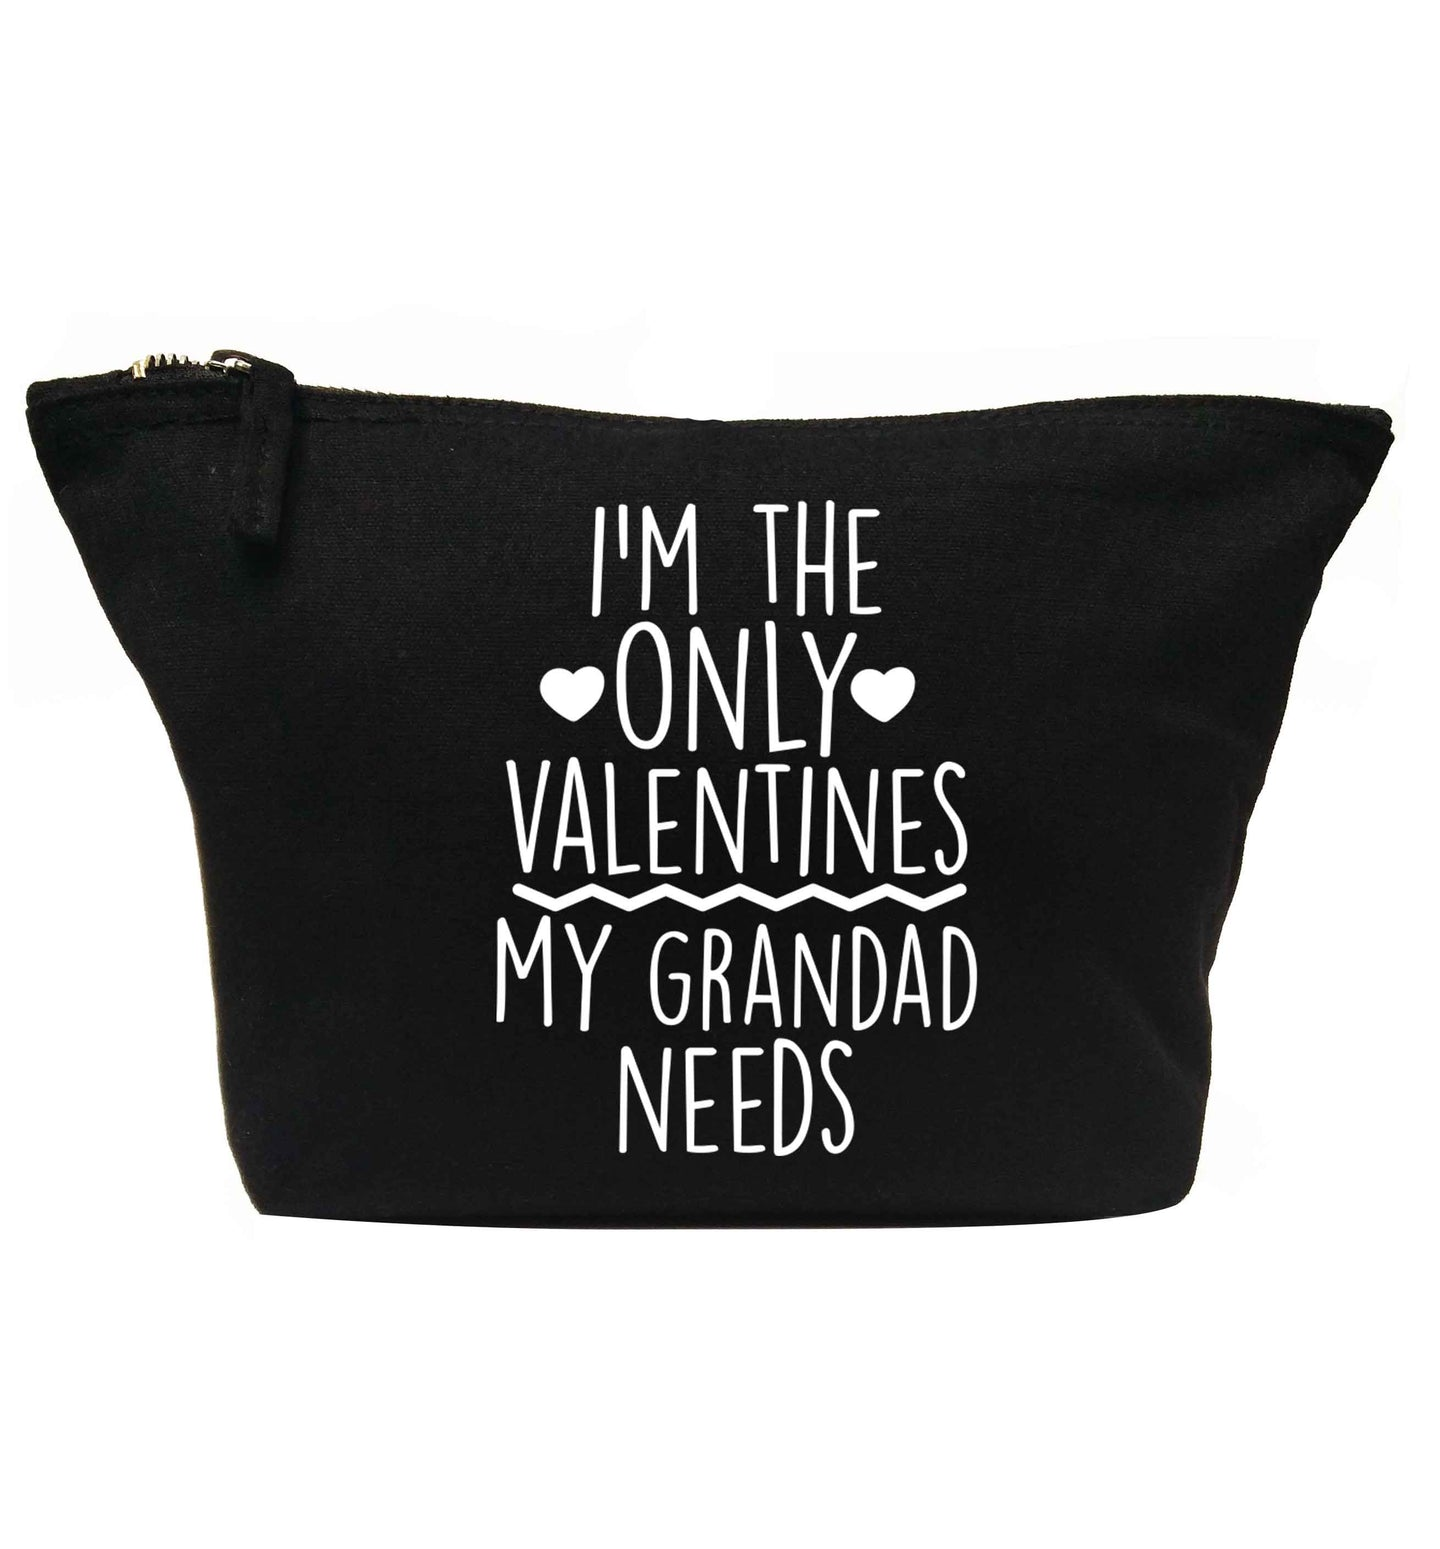 I'm the only valentines my grandad needs | Makeup / wash bag